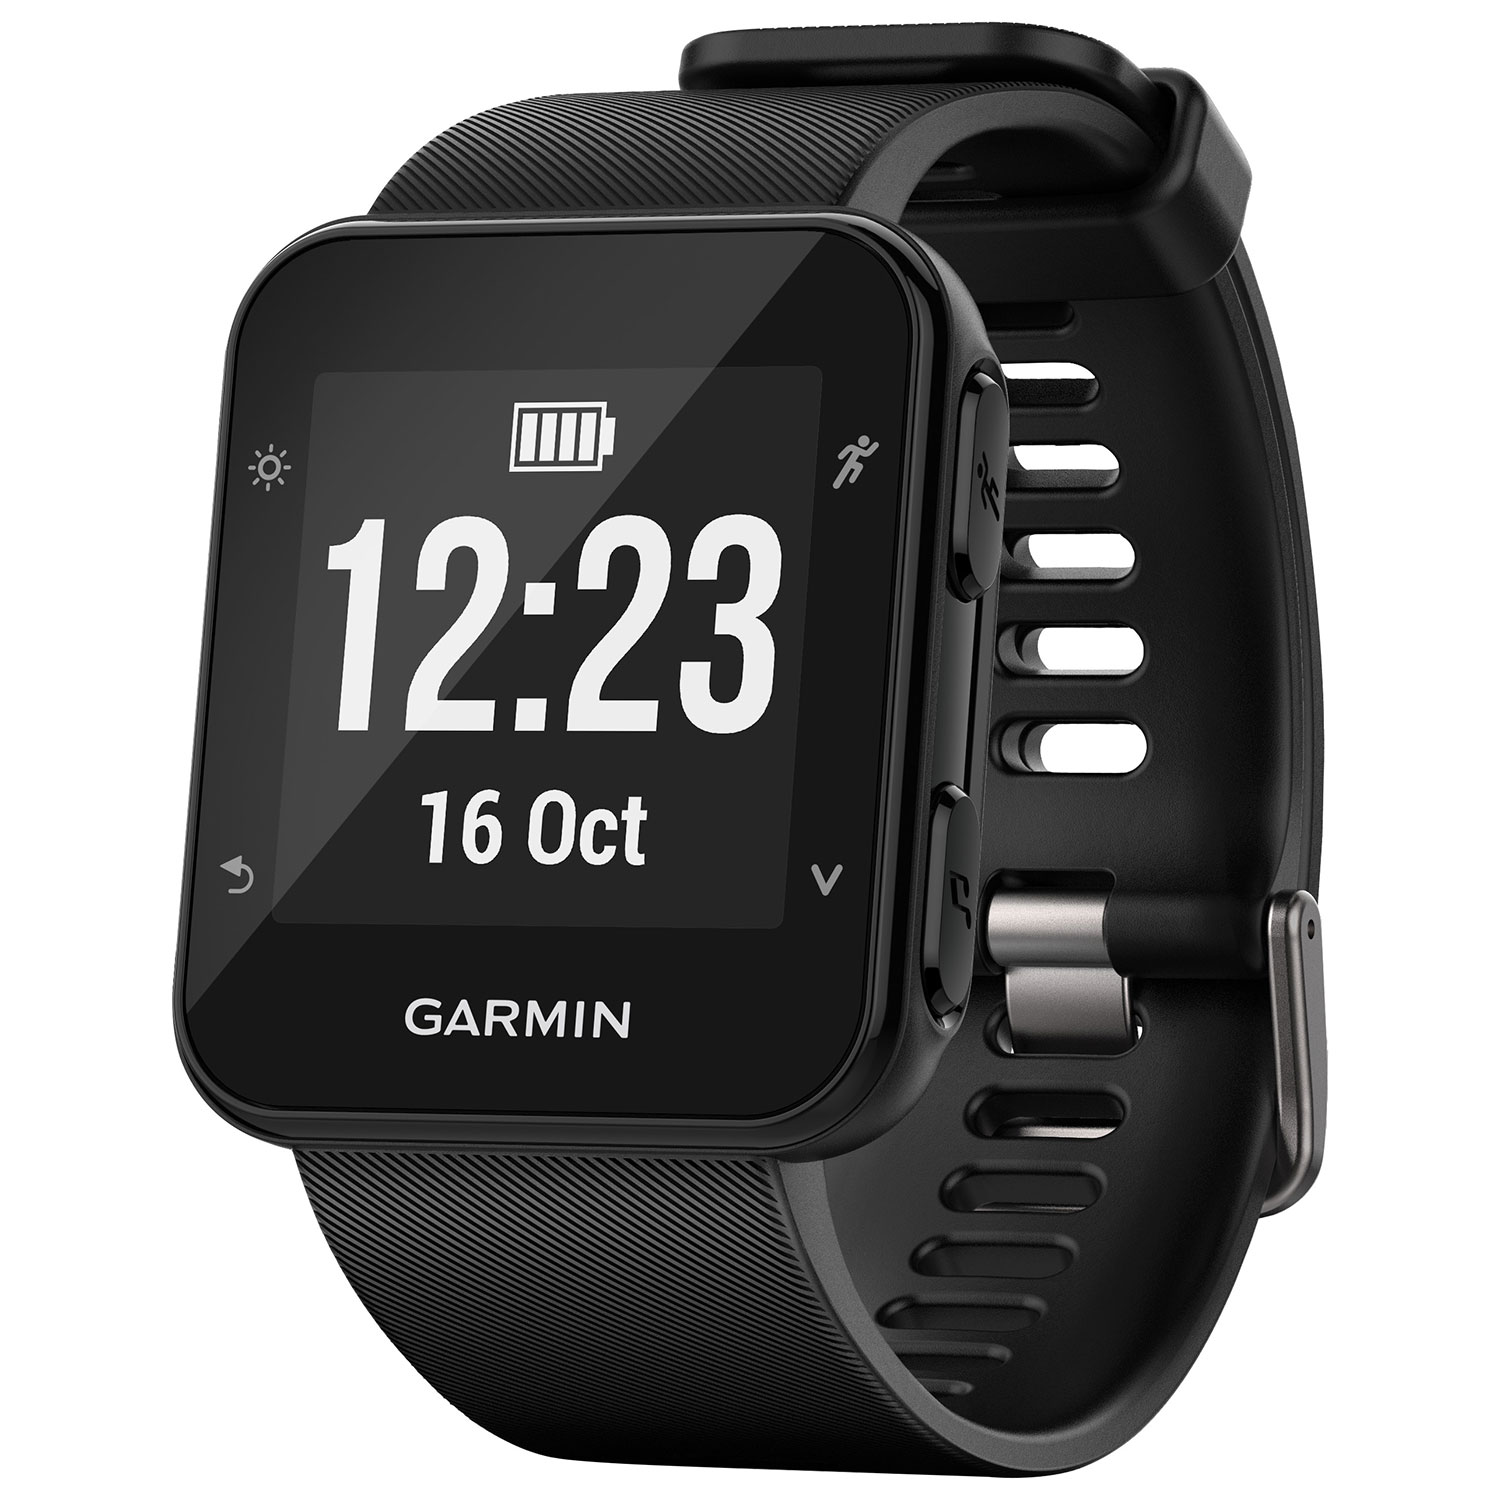 accessories garmin with gps monitor watch dp amazon phones forerunner discontinued cell ca manufacturer heart touchscreen rate watches by